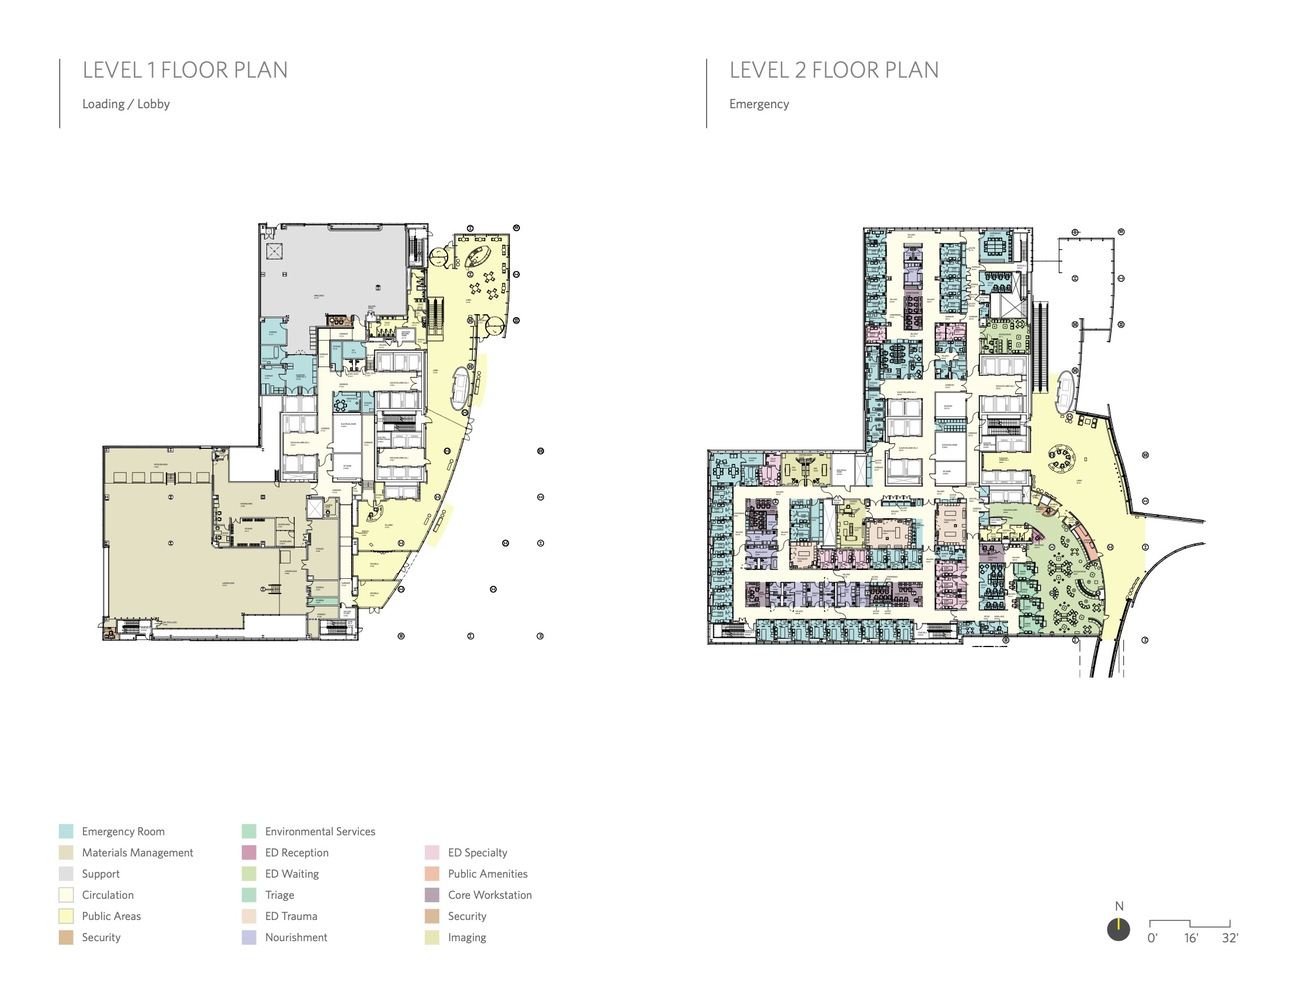 medium resolution of ann robert h lurie children s hospital of chicago zgf architects solomon cordwell buenz anderson mikos architects level 1 and 2 floor plan